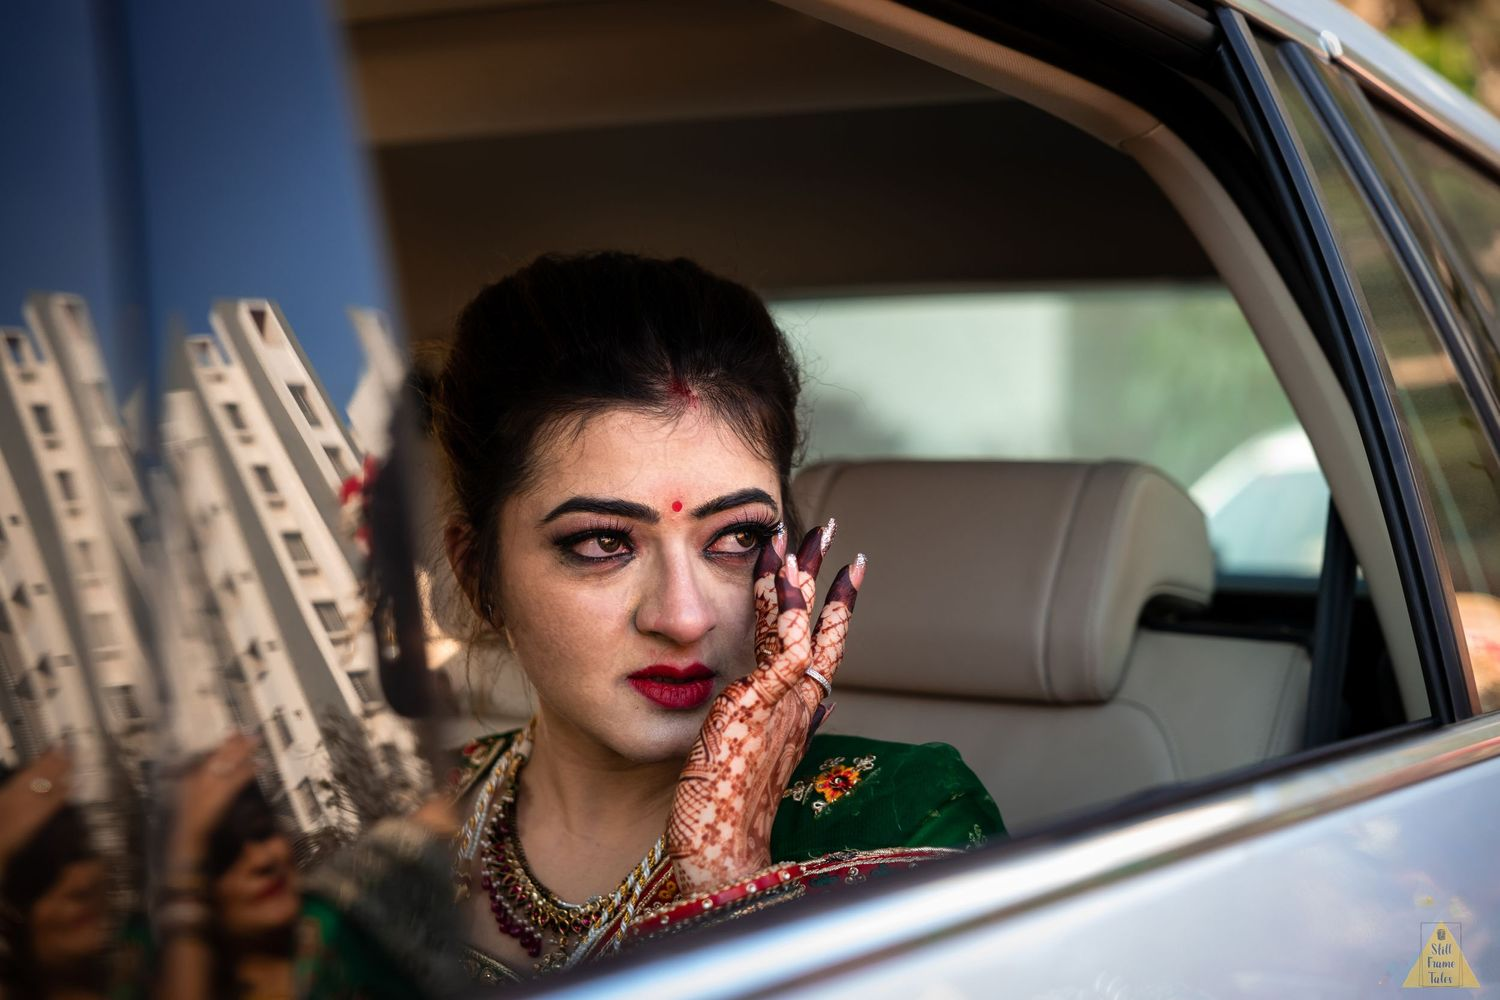 Bride wiping her tears while sitting in a car window at a destination wedding emotional viddai